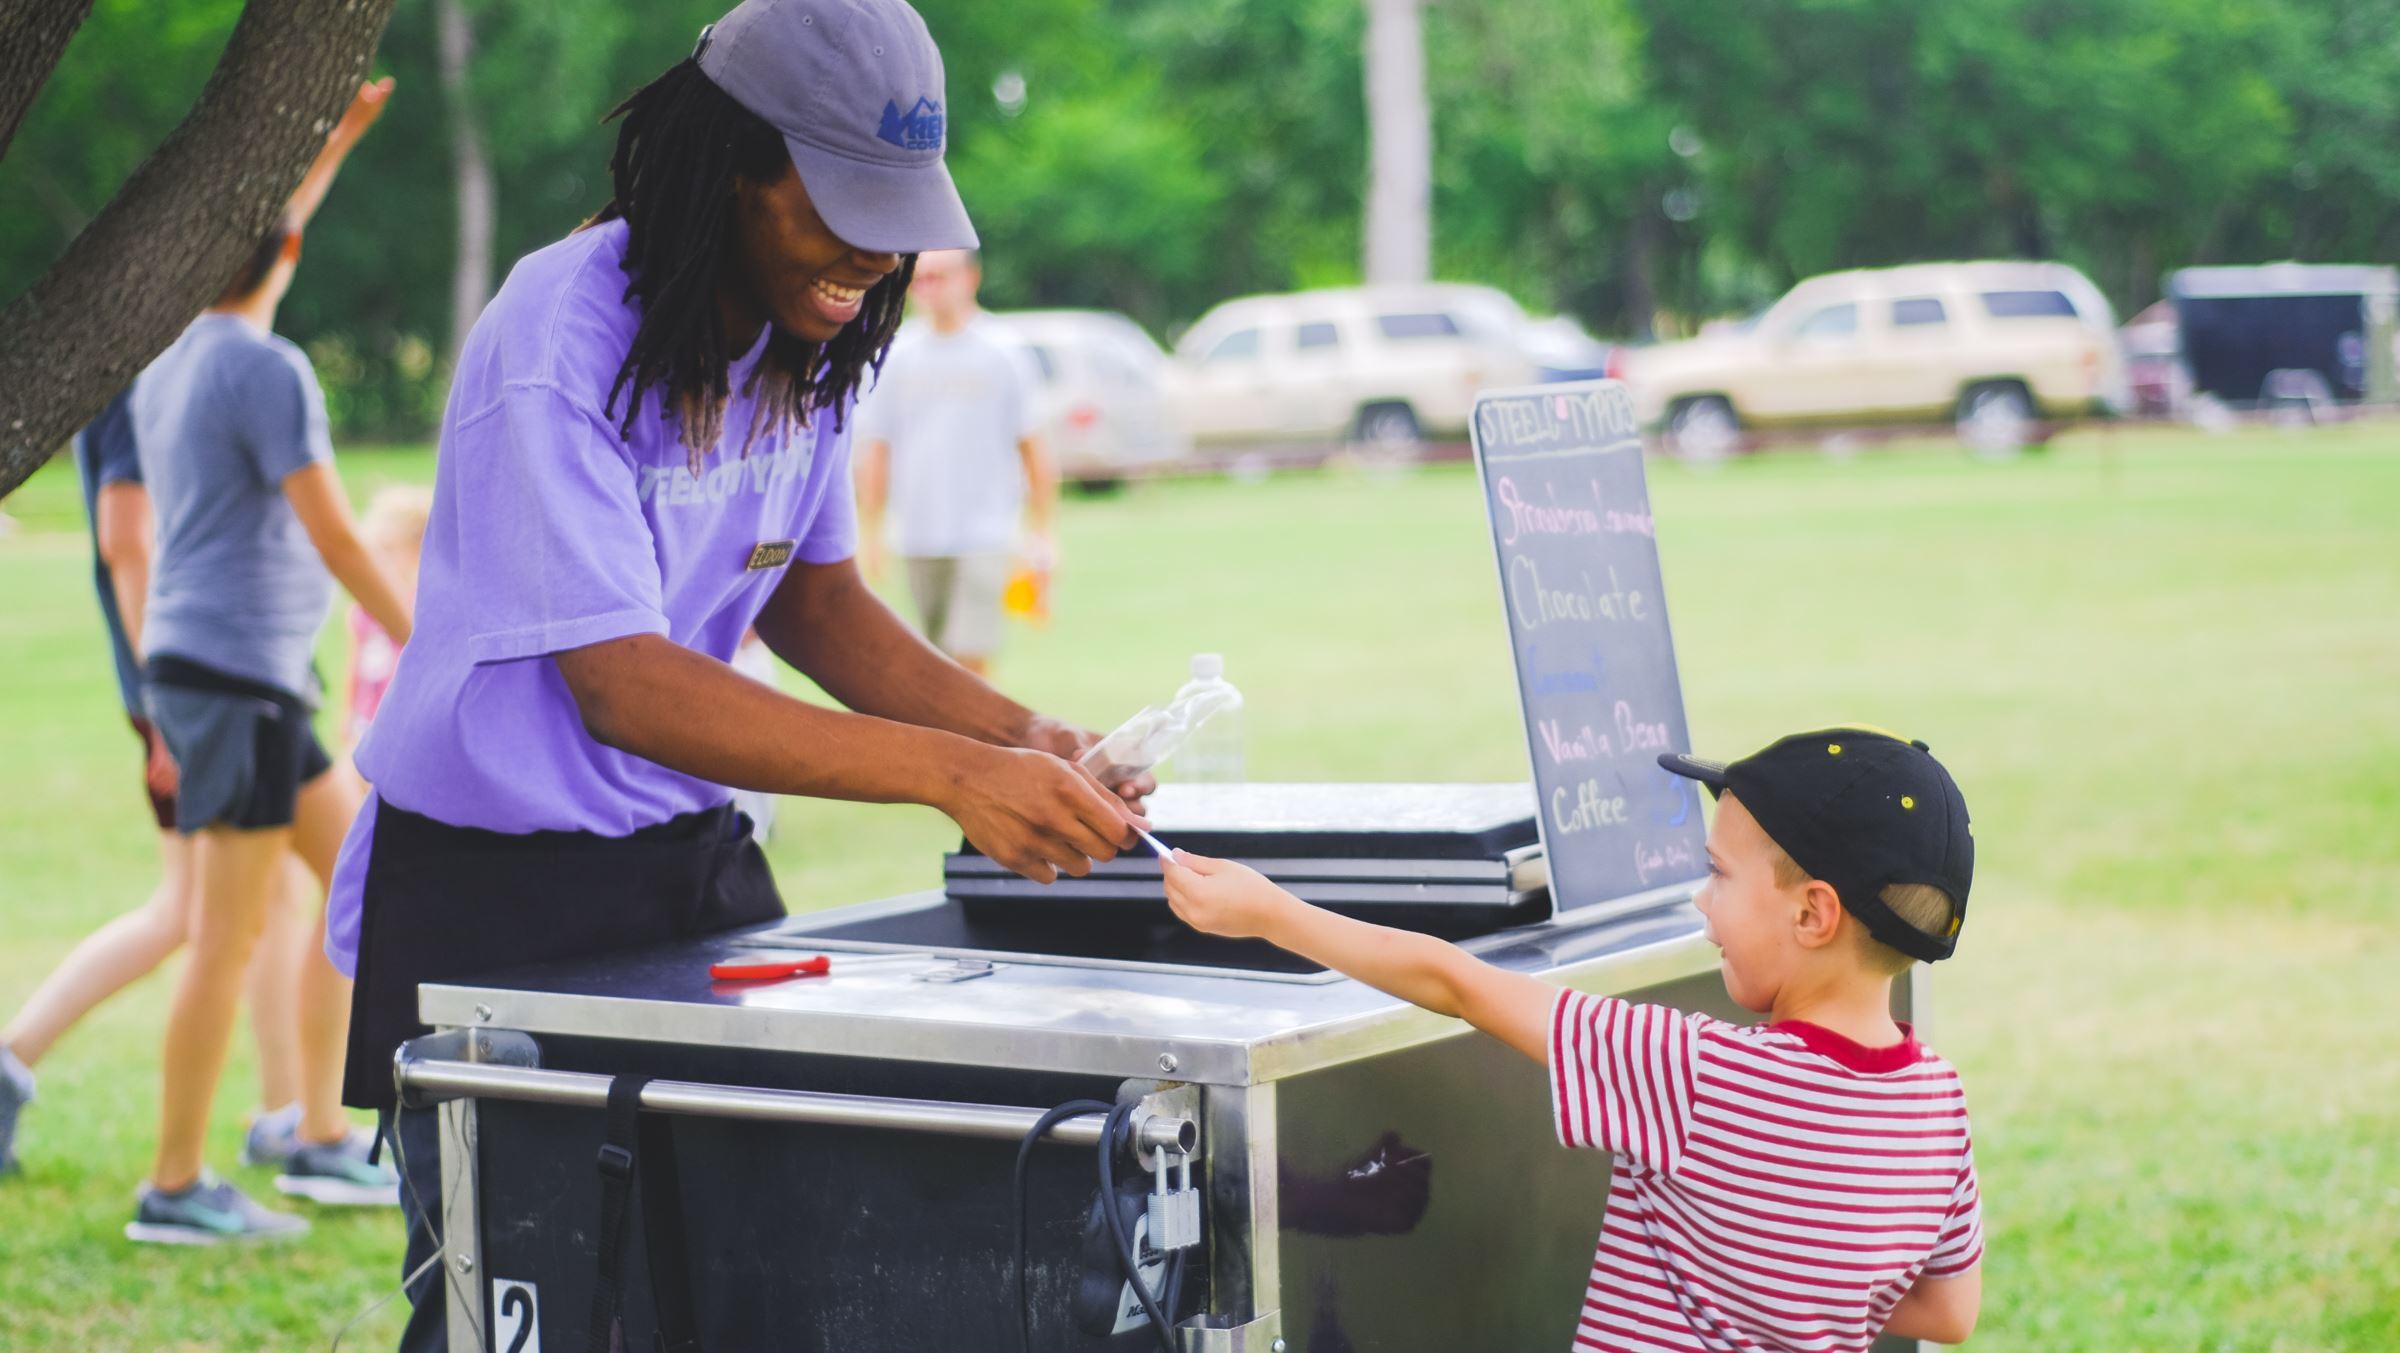 Steel City Pops at Picnic in the Park Captured by Jessica Hume